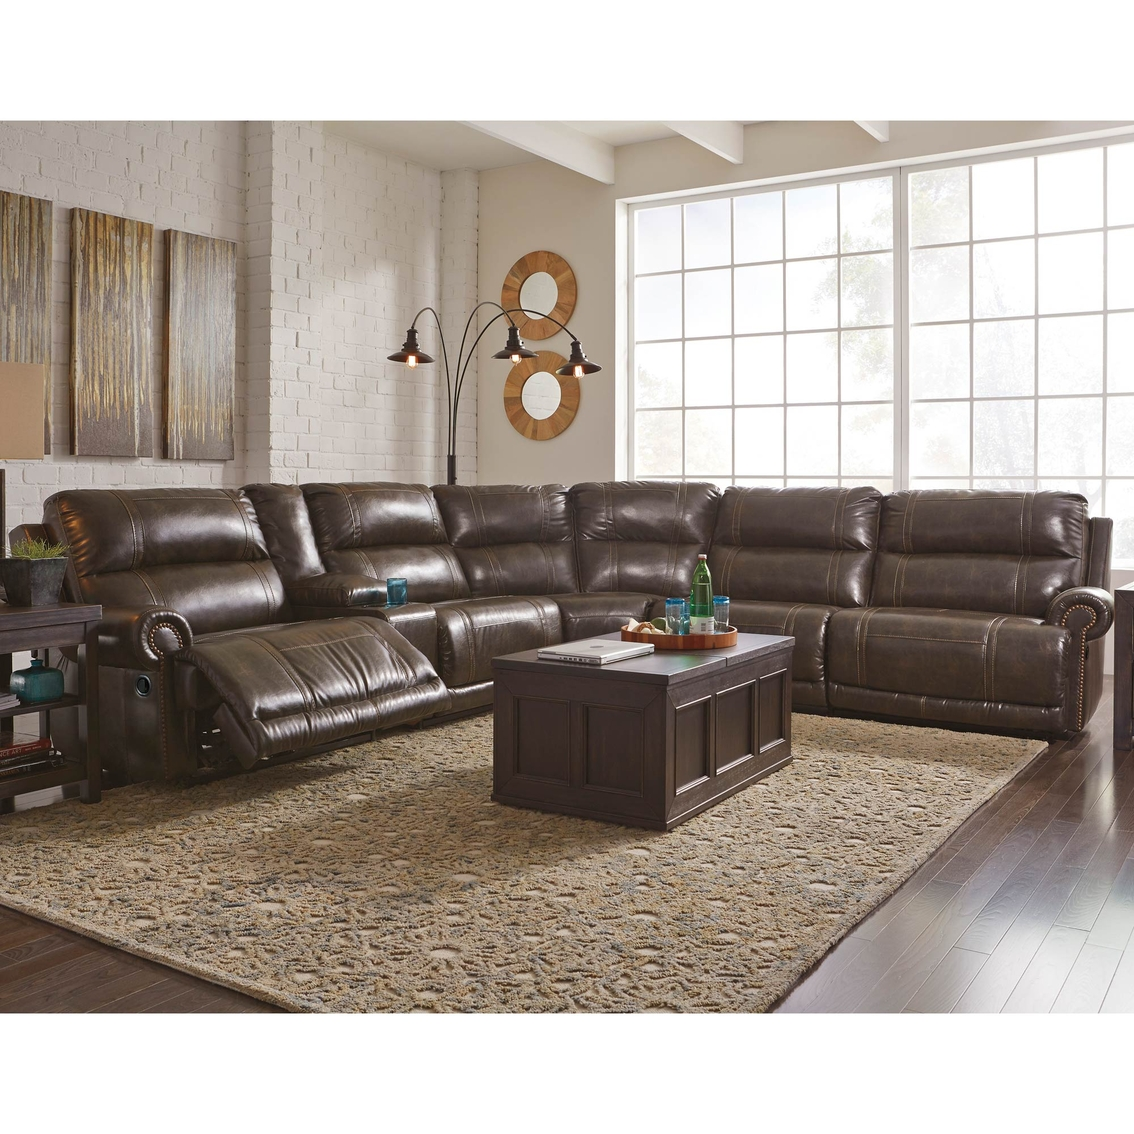 1408  sc 1 st  Exchange : ashley corduroy sectional sofa - Sectionals, Sofas & Couches